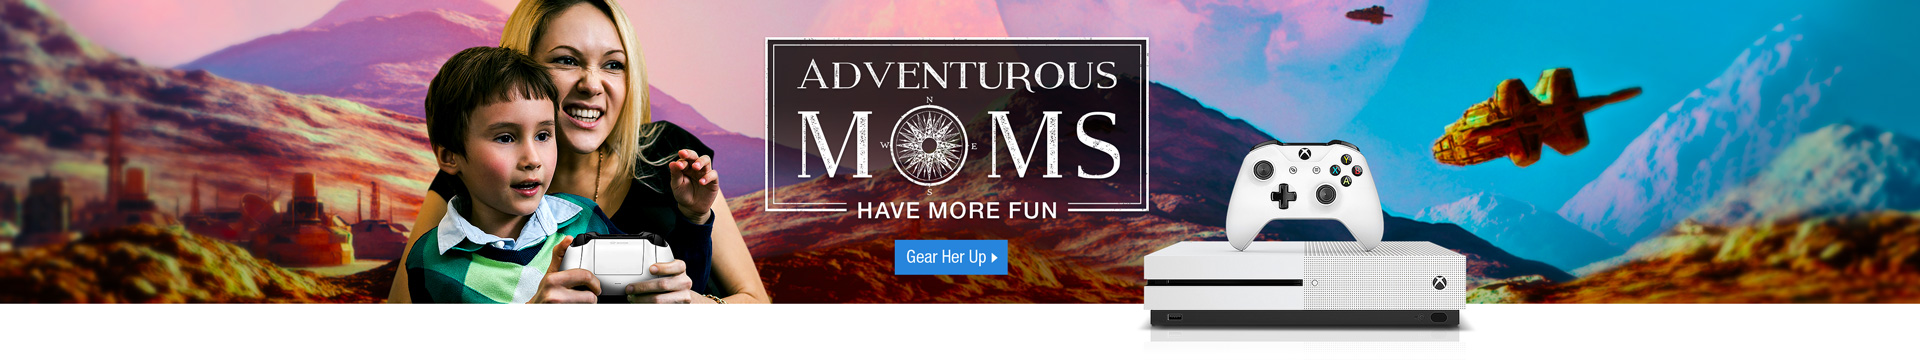 Mother's Day - Adventurous Moms Have More Fun